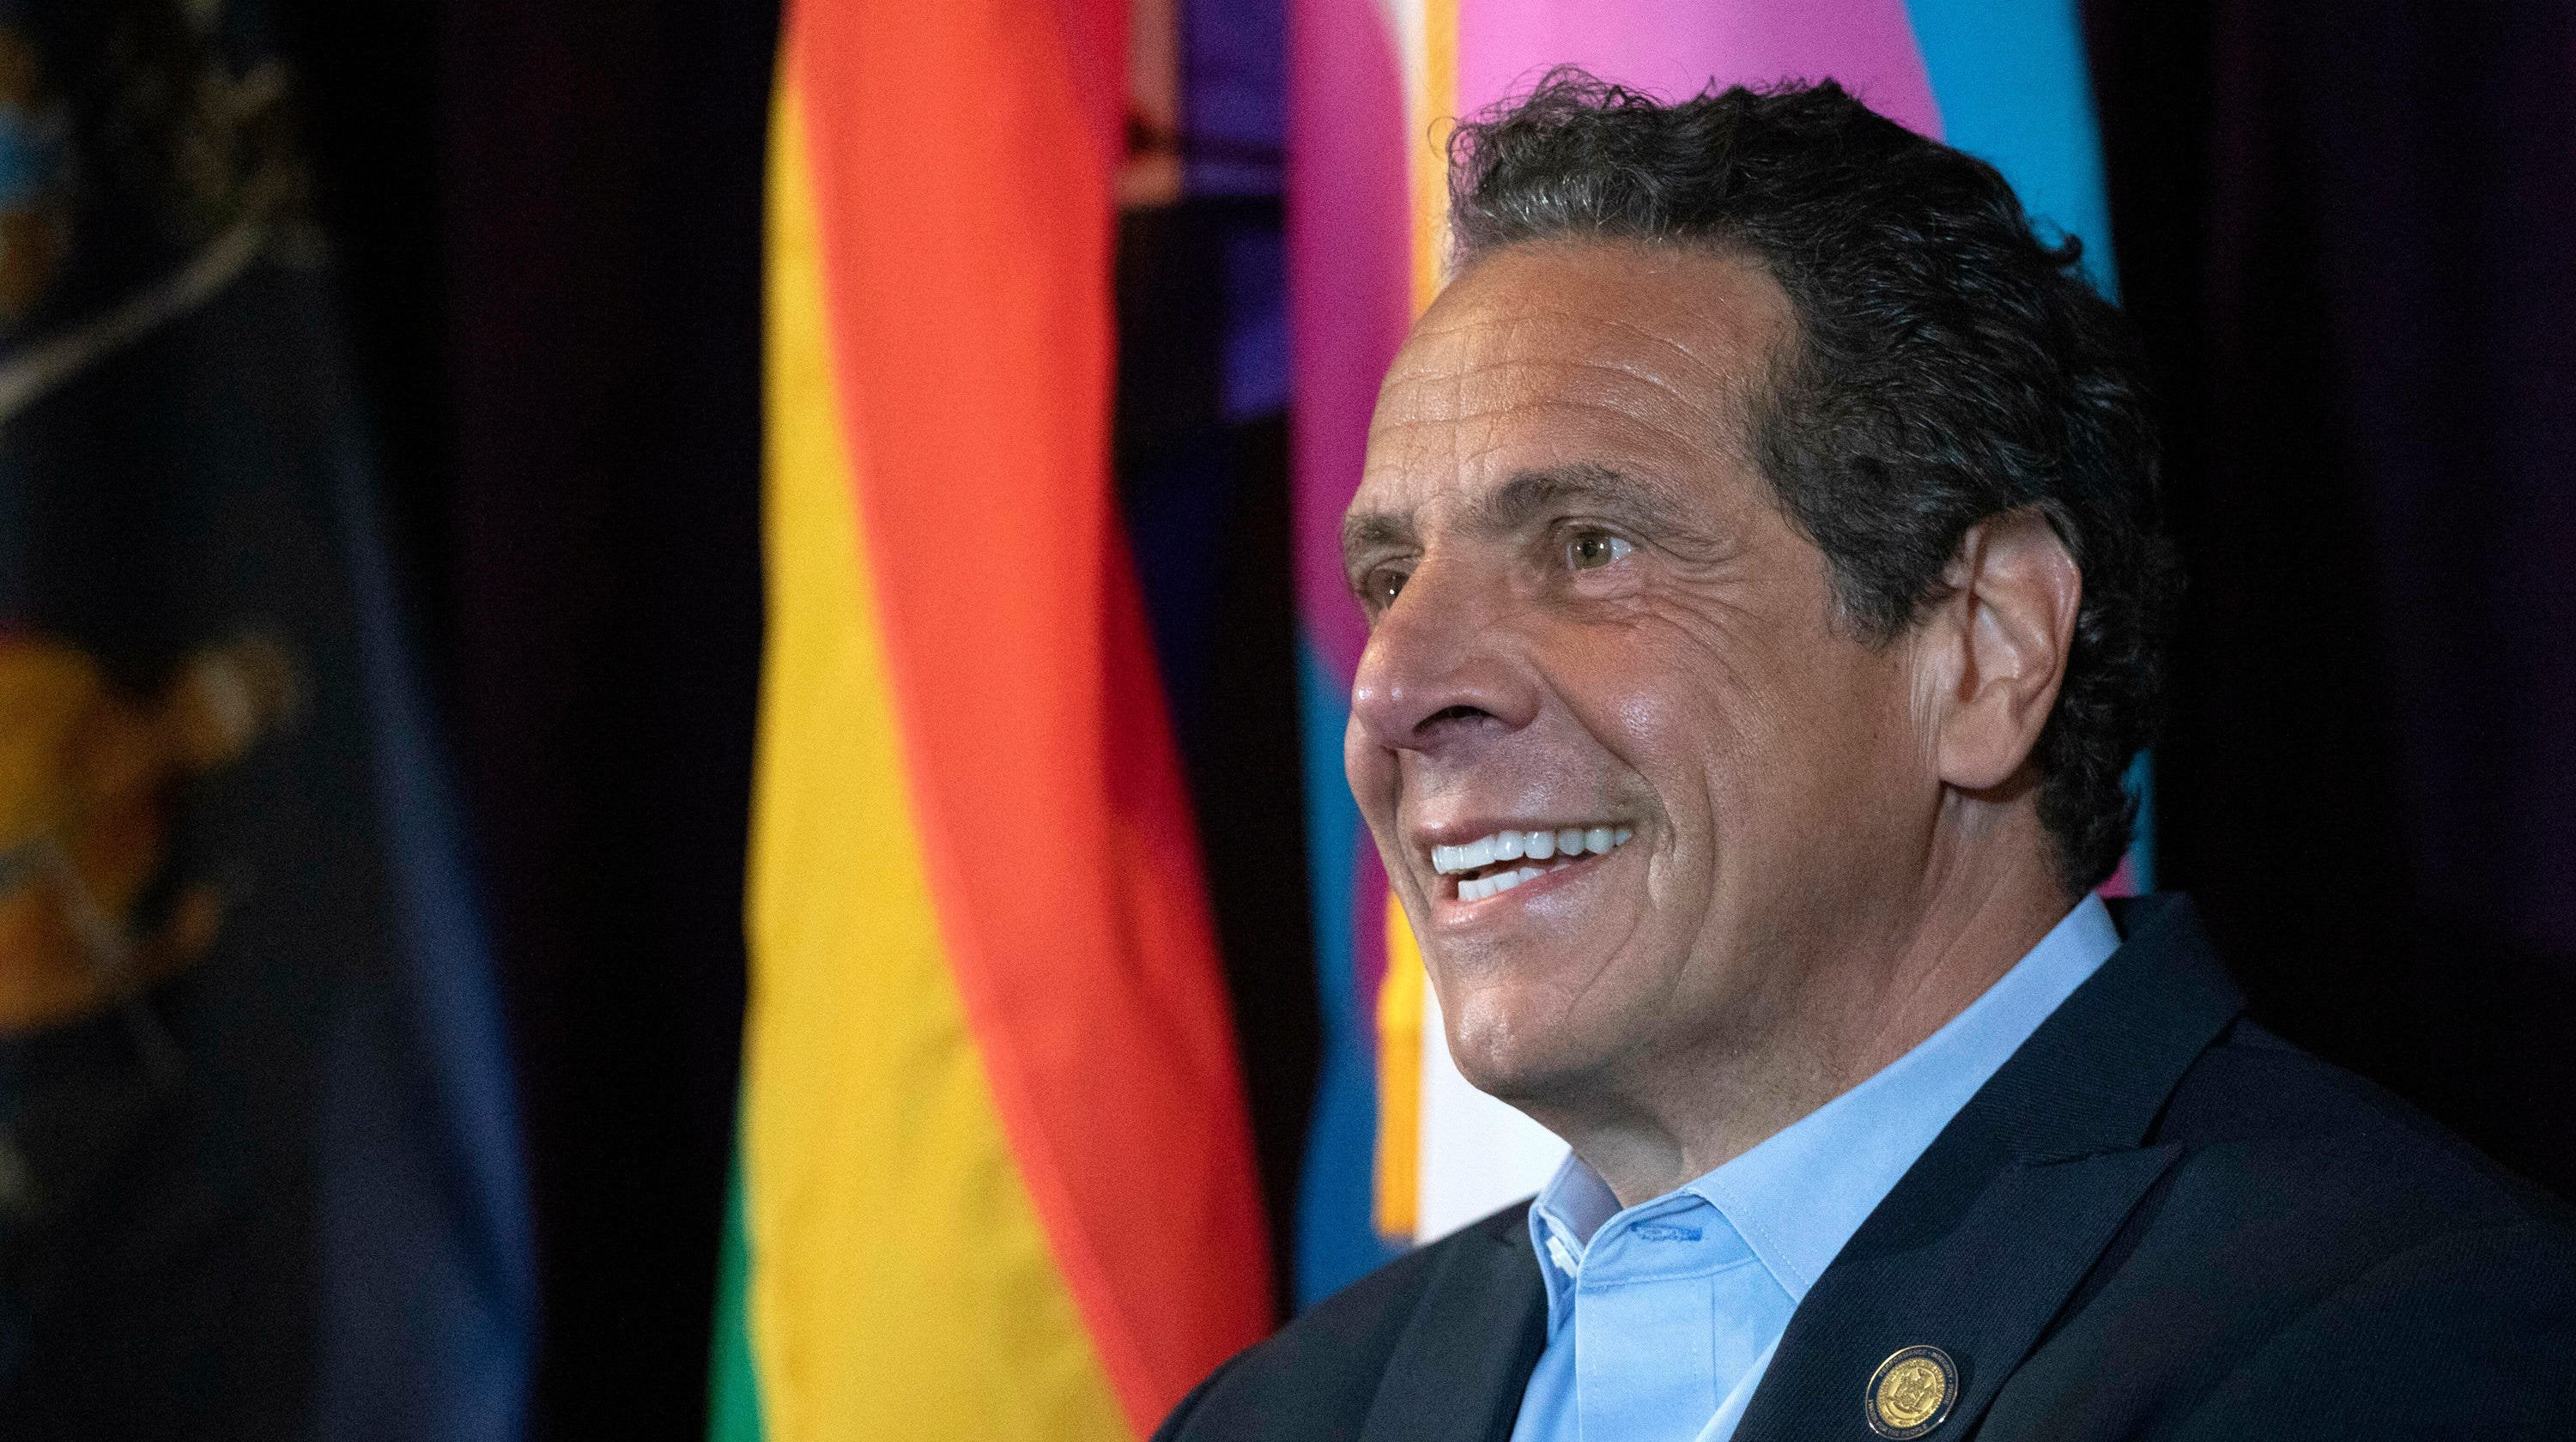 Cuomo: Dems 'should all be primaried' if they can't legalize pot, pass progressive agenda